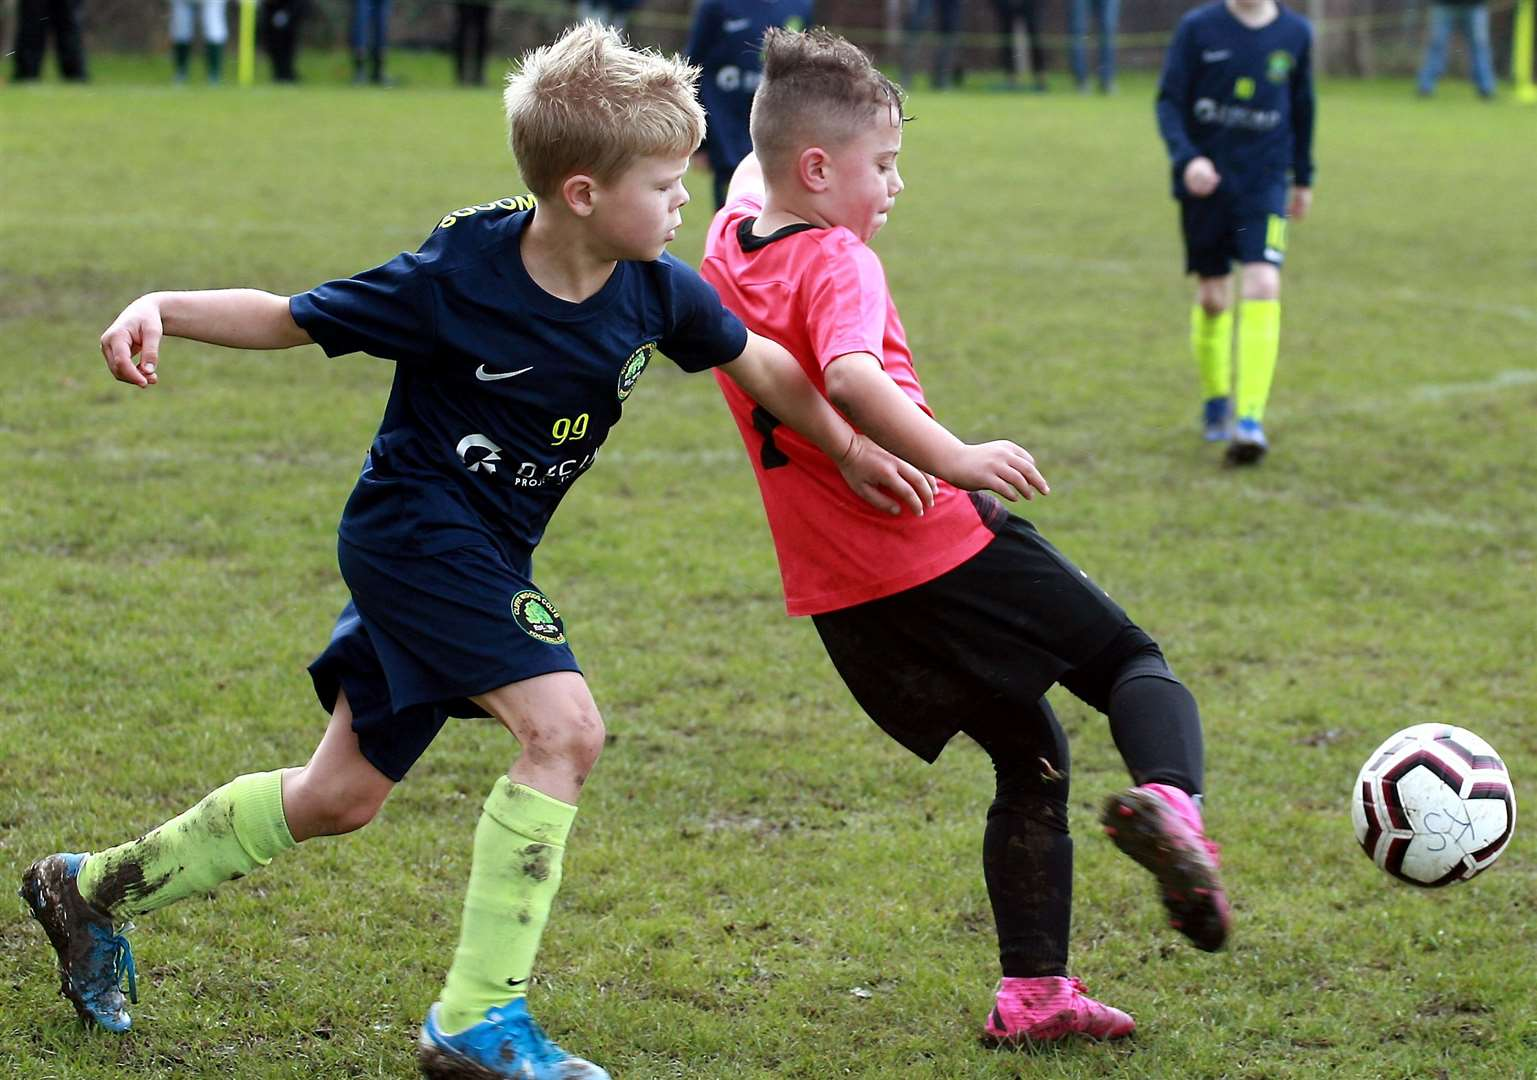 Sheerness East Youth under-9s get to the ball ahead of Cliffe Woods Colts under-9s. Picture: Phil Lee FM18684378